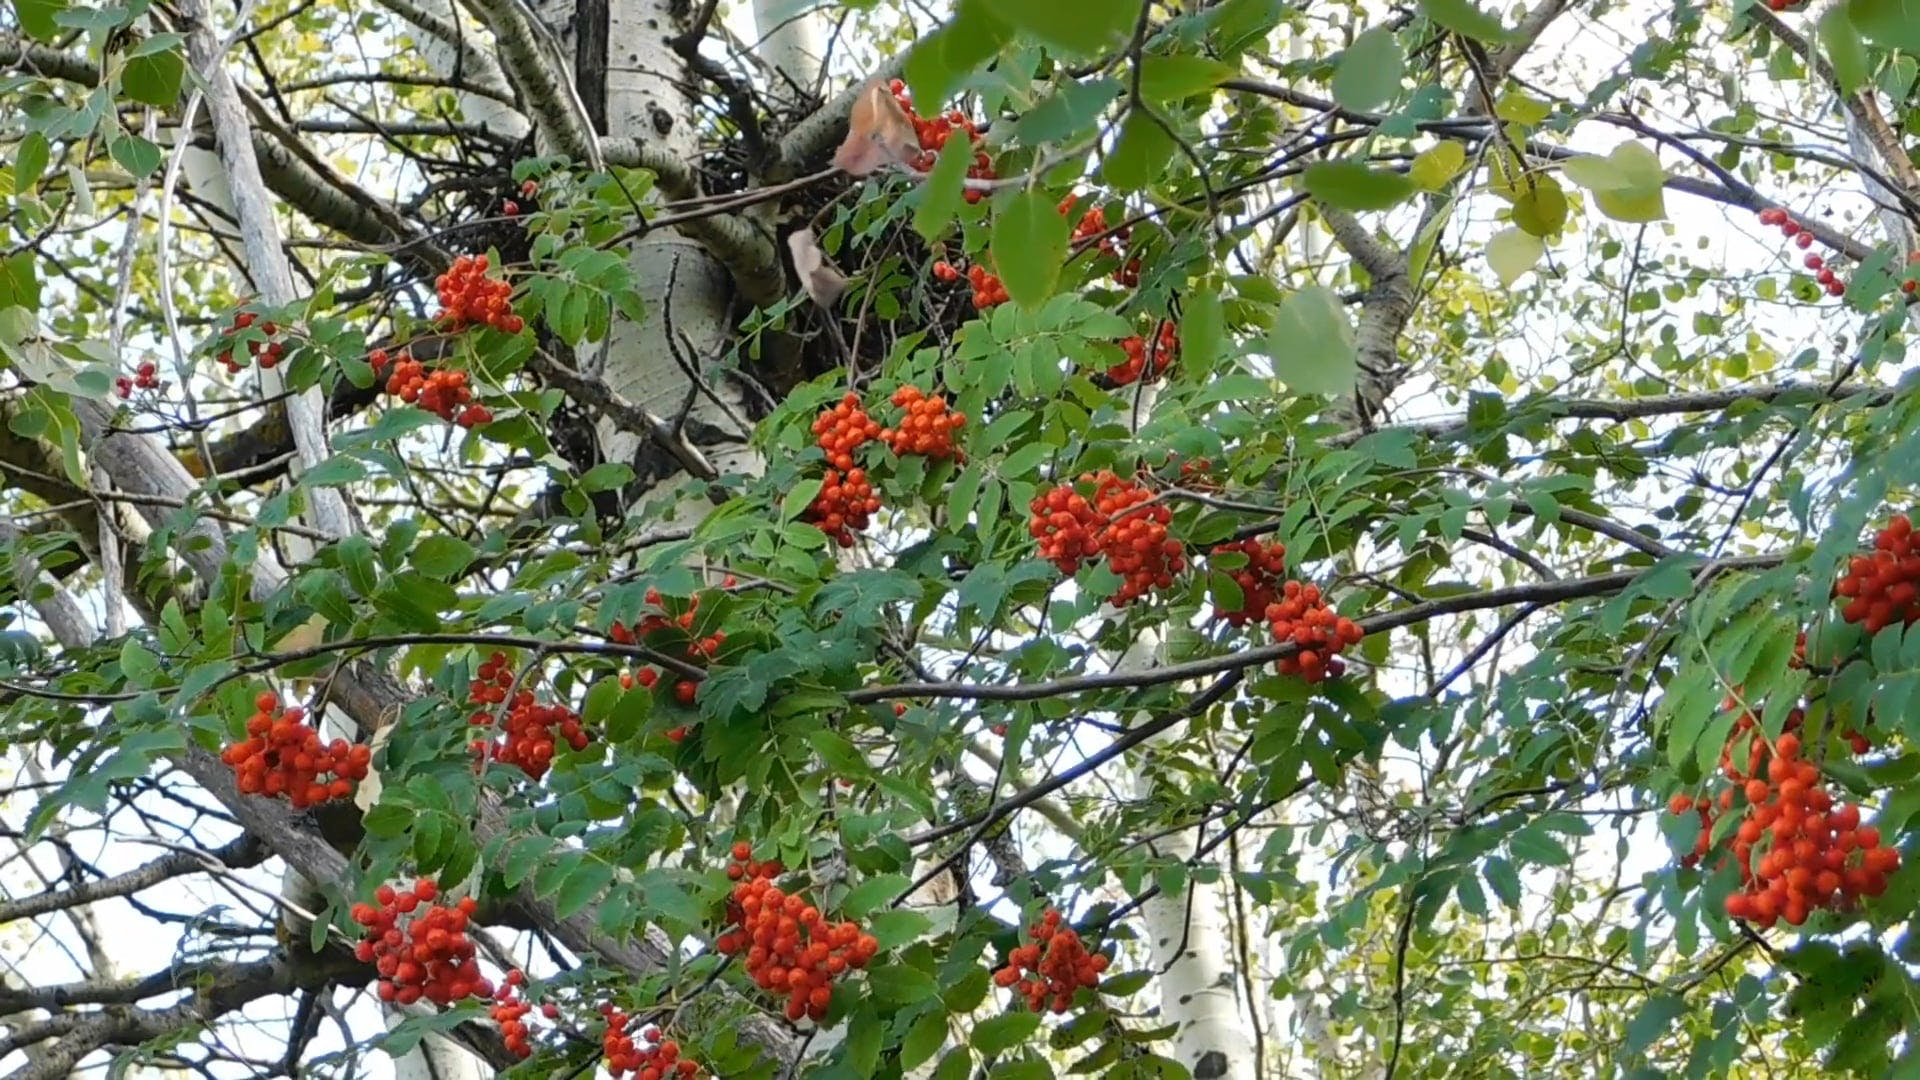 Tree With Red Fruits